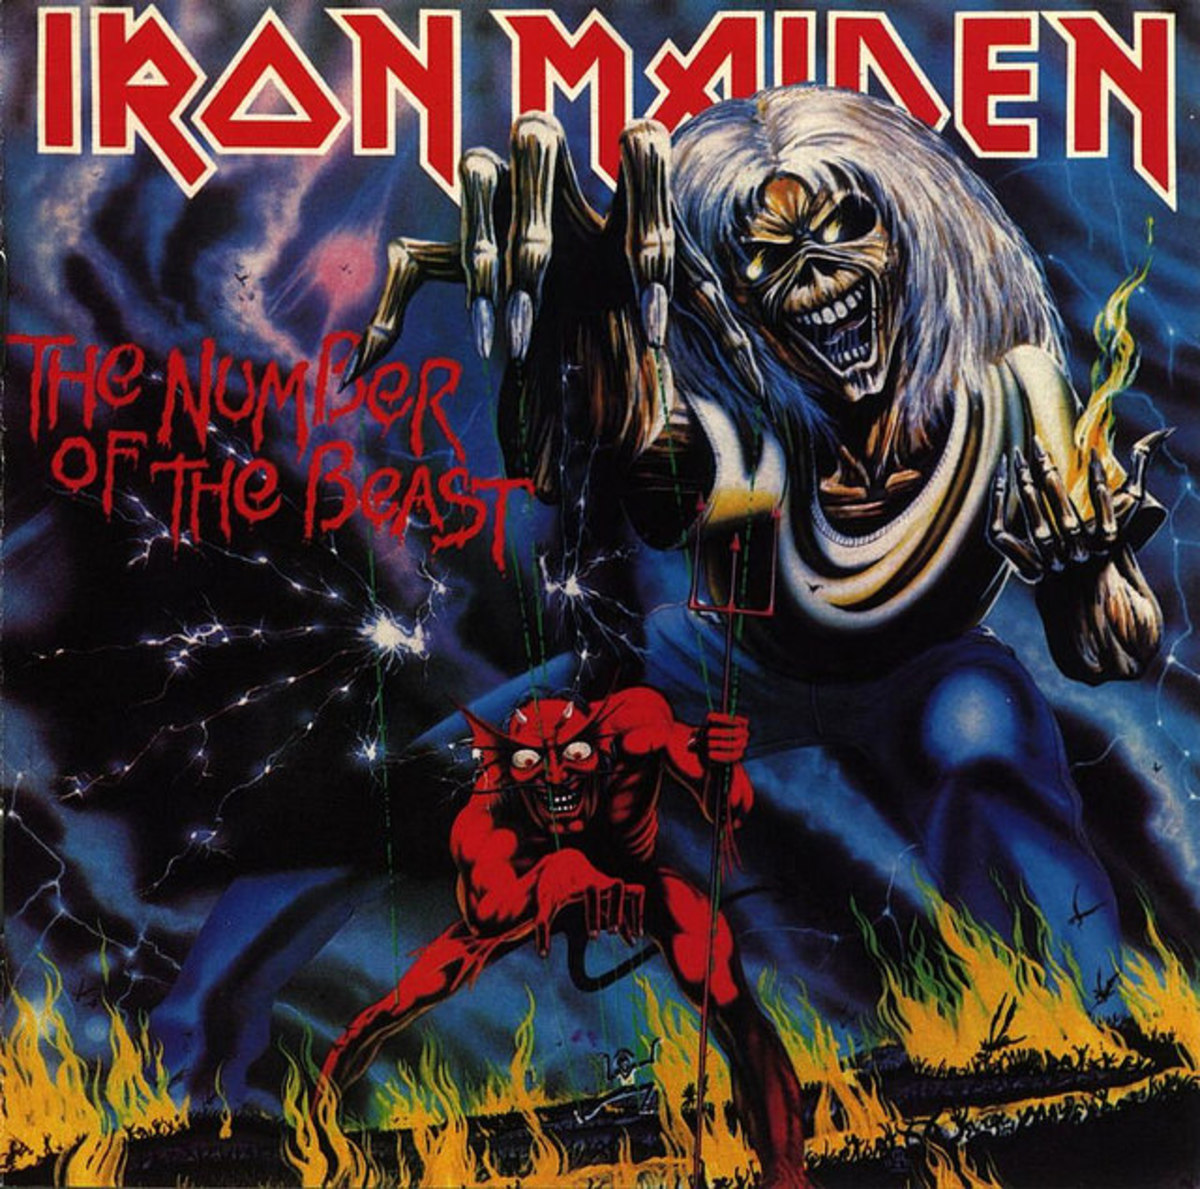 "Iron Maiden ""The Number of the Beast"" Harvest ST-12202 12"" LP Vinyl Record  U.S. Pressing (1982) Album Cover Art by Derek Riggs"